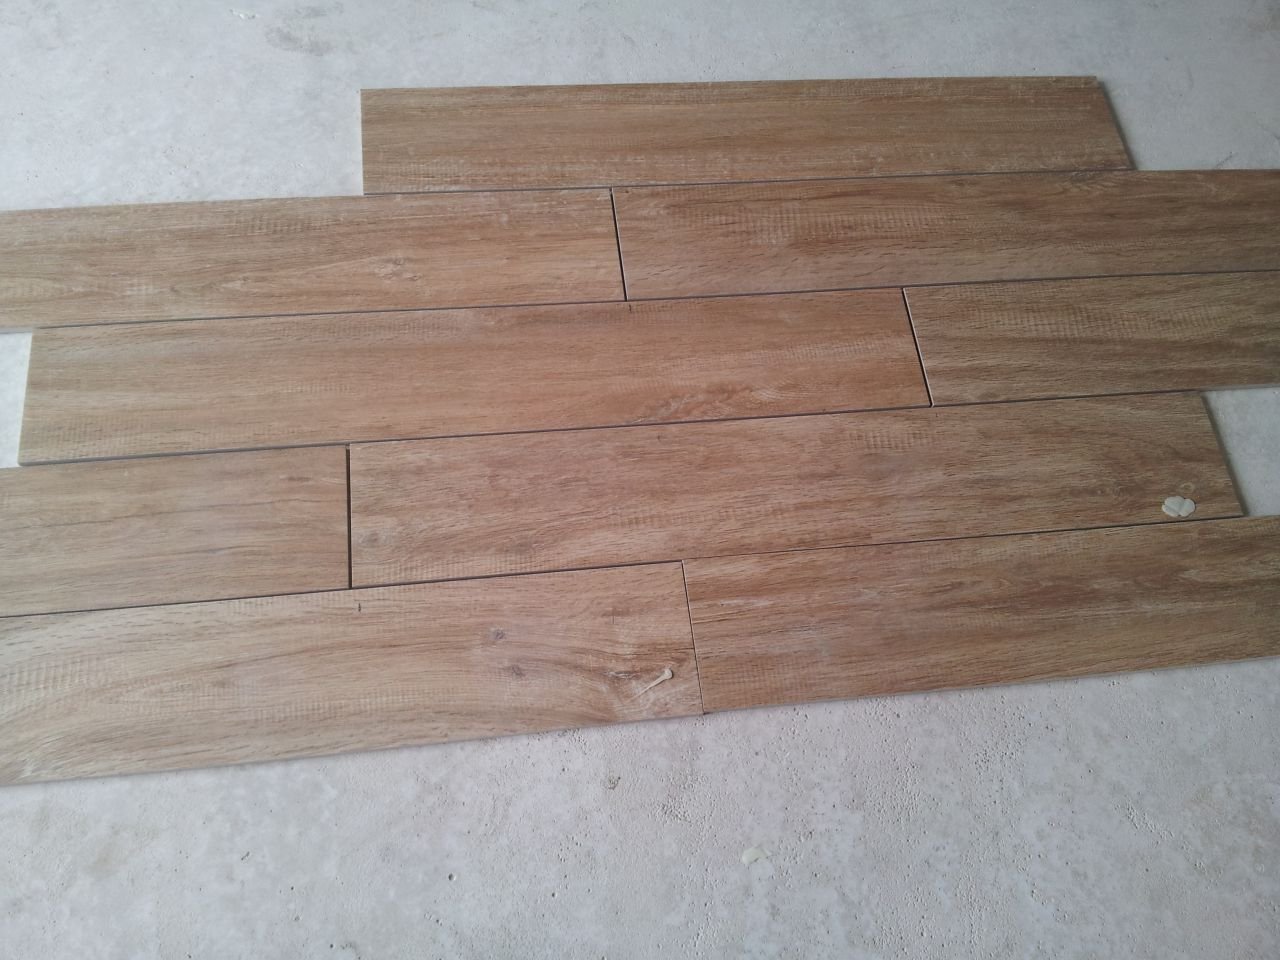 Sens et technique de pose pr carrelage imitation parquet for Pose de carrelage sur parquet